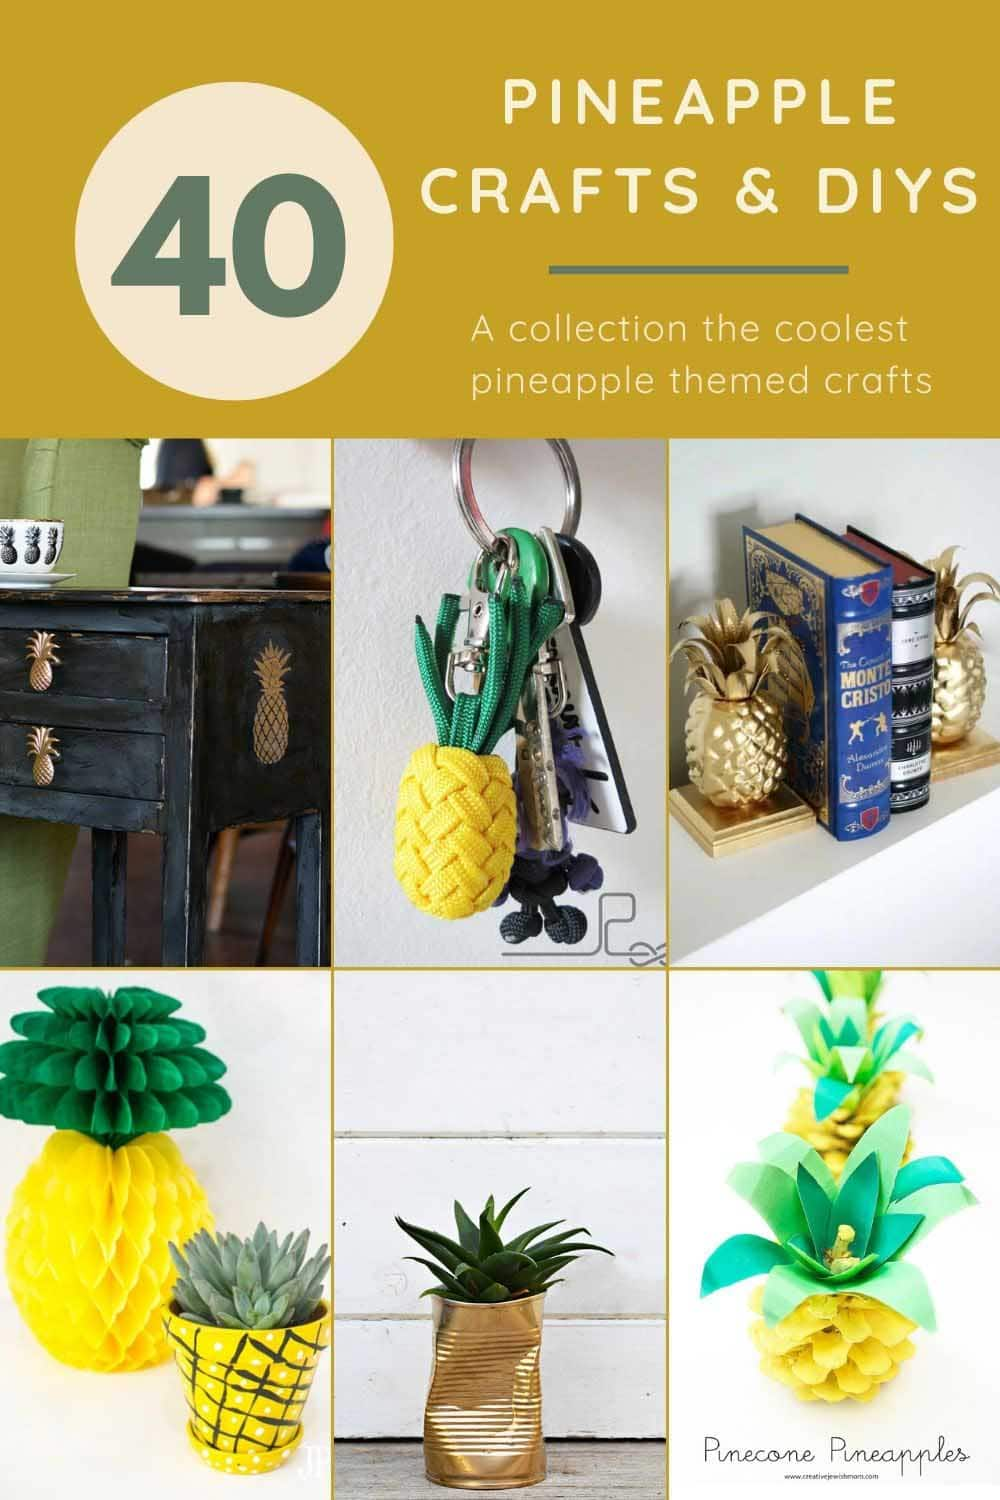 40 0f the best pineapple themed crafts